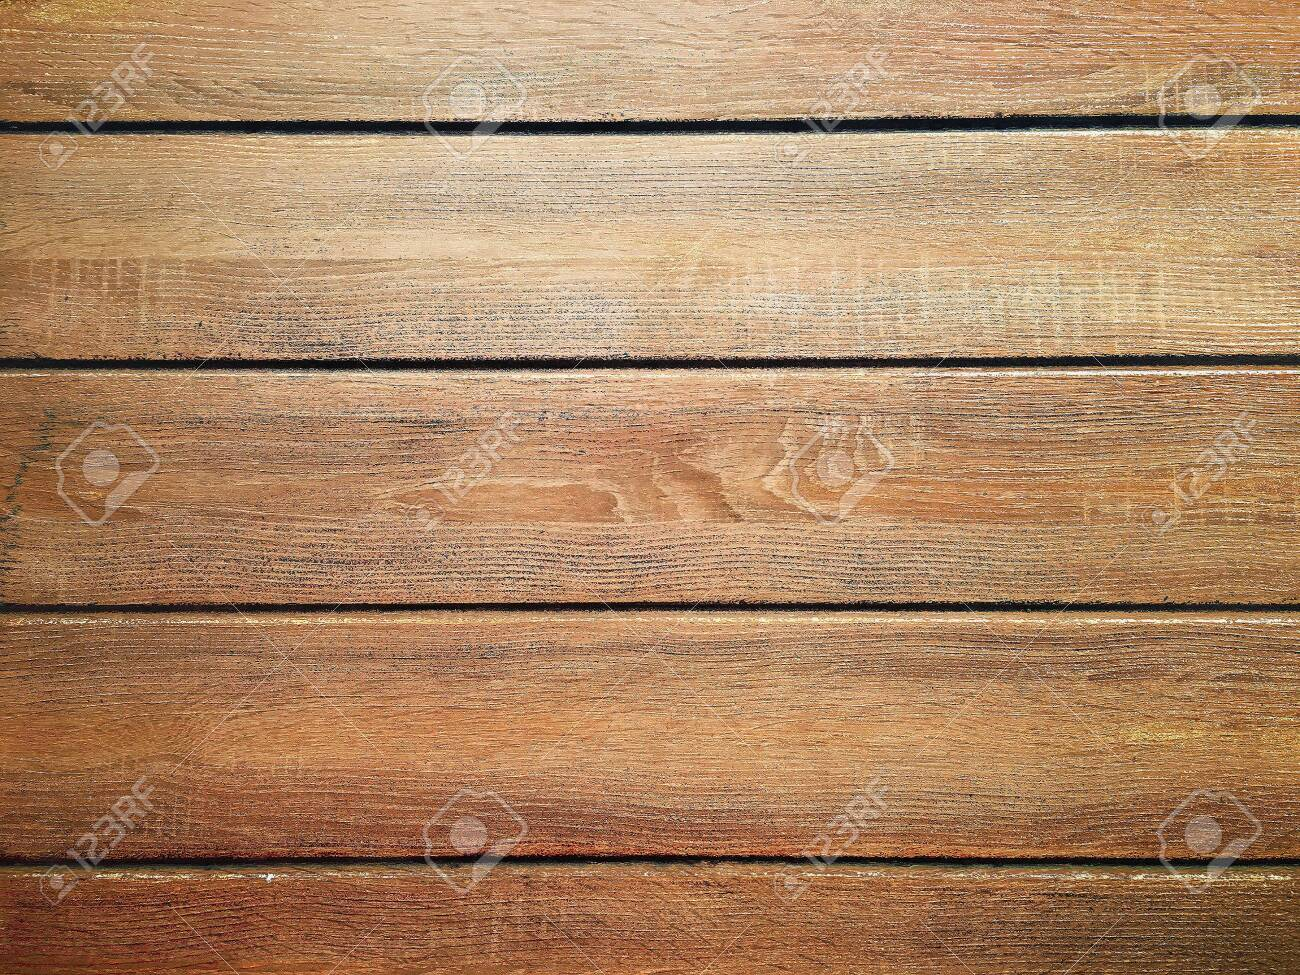 brown wood texture background - 121422901